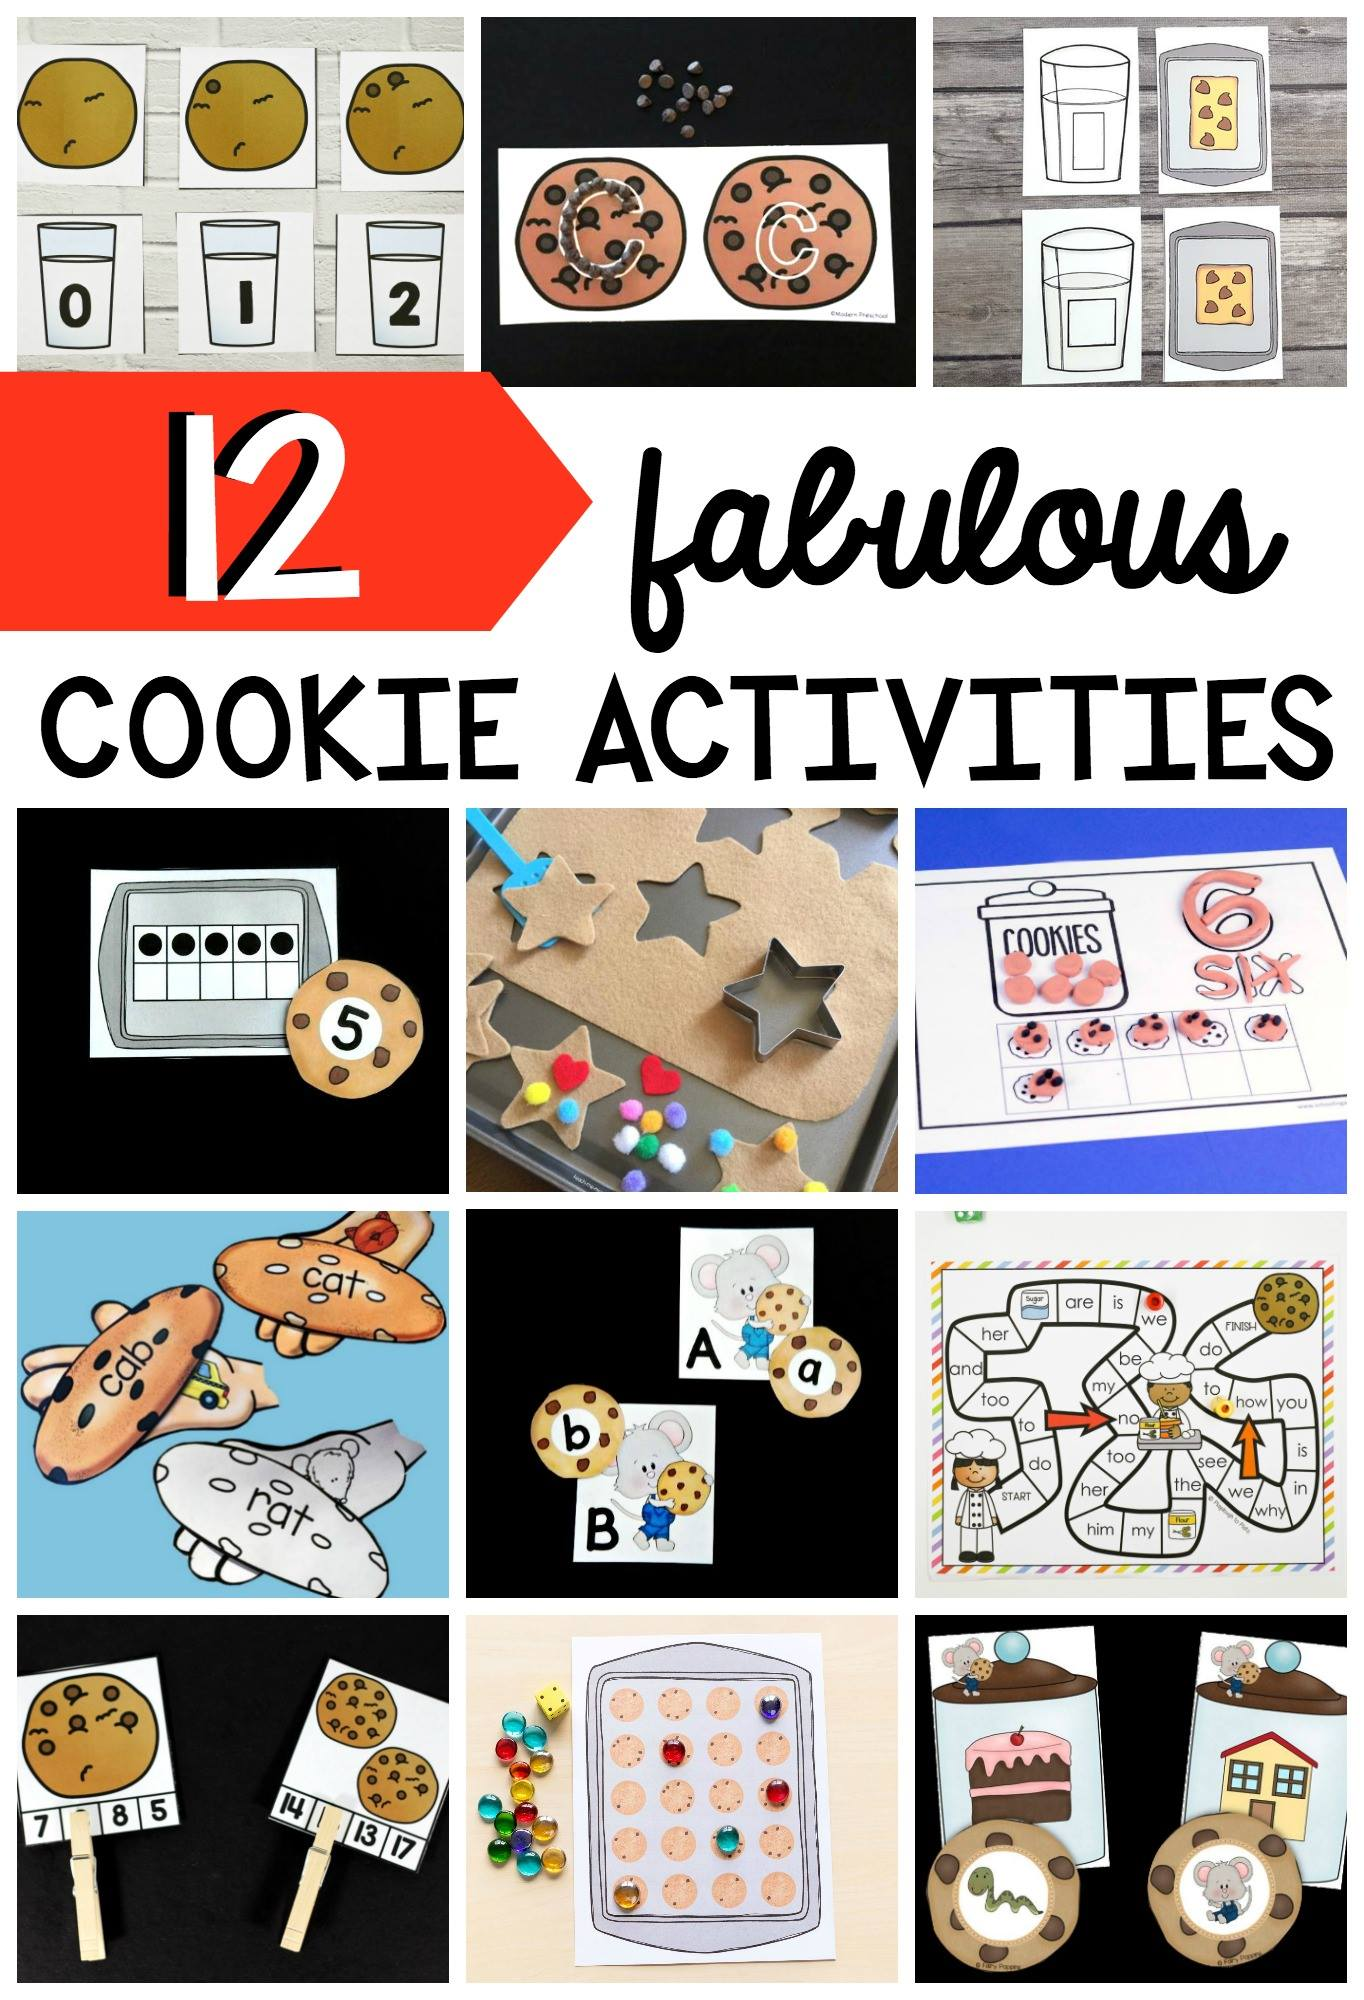 Fun cookie-themed learning activities for kids!